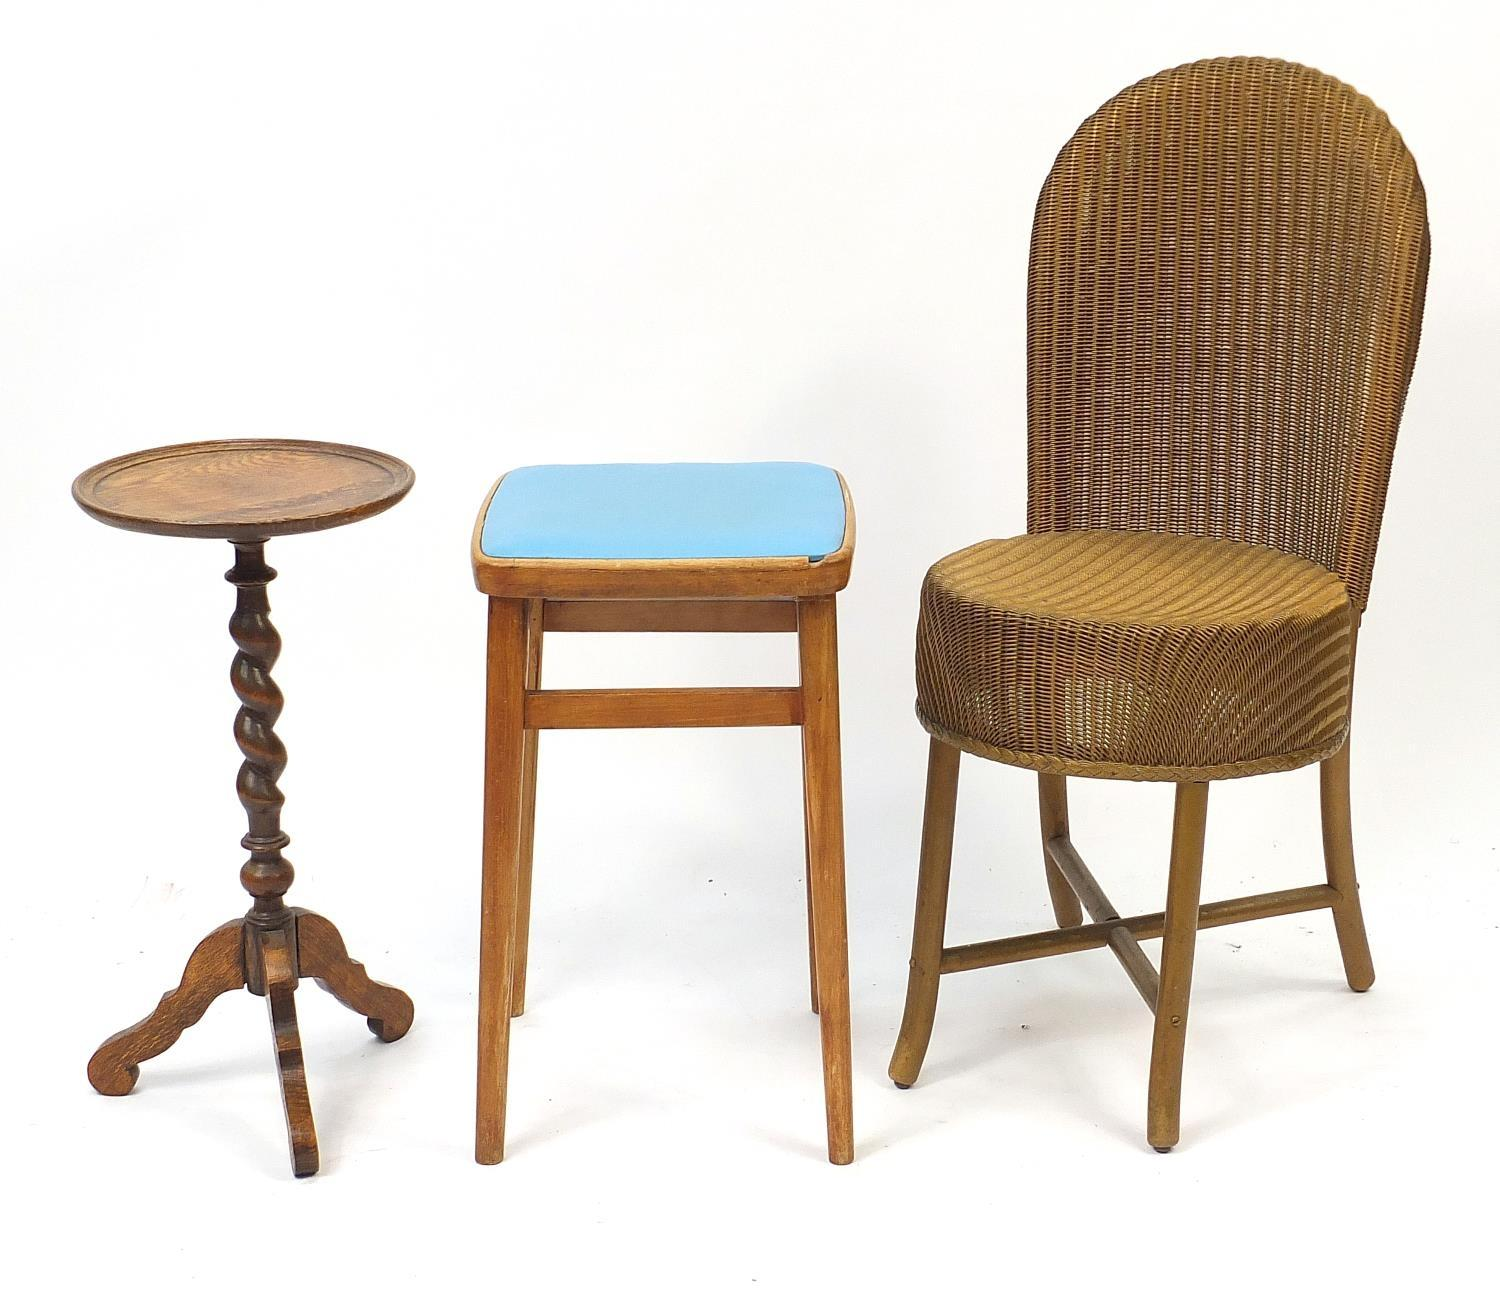 Occasional furniture including a Lloyd loom chair and barley twist tripod occasional table, the